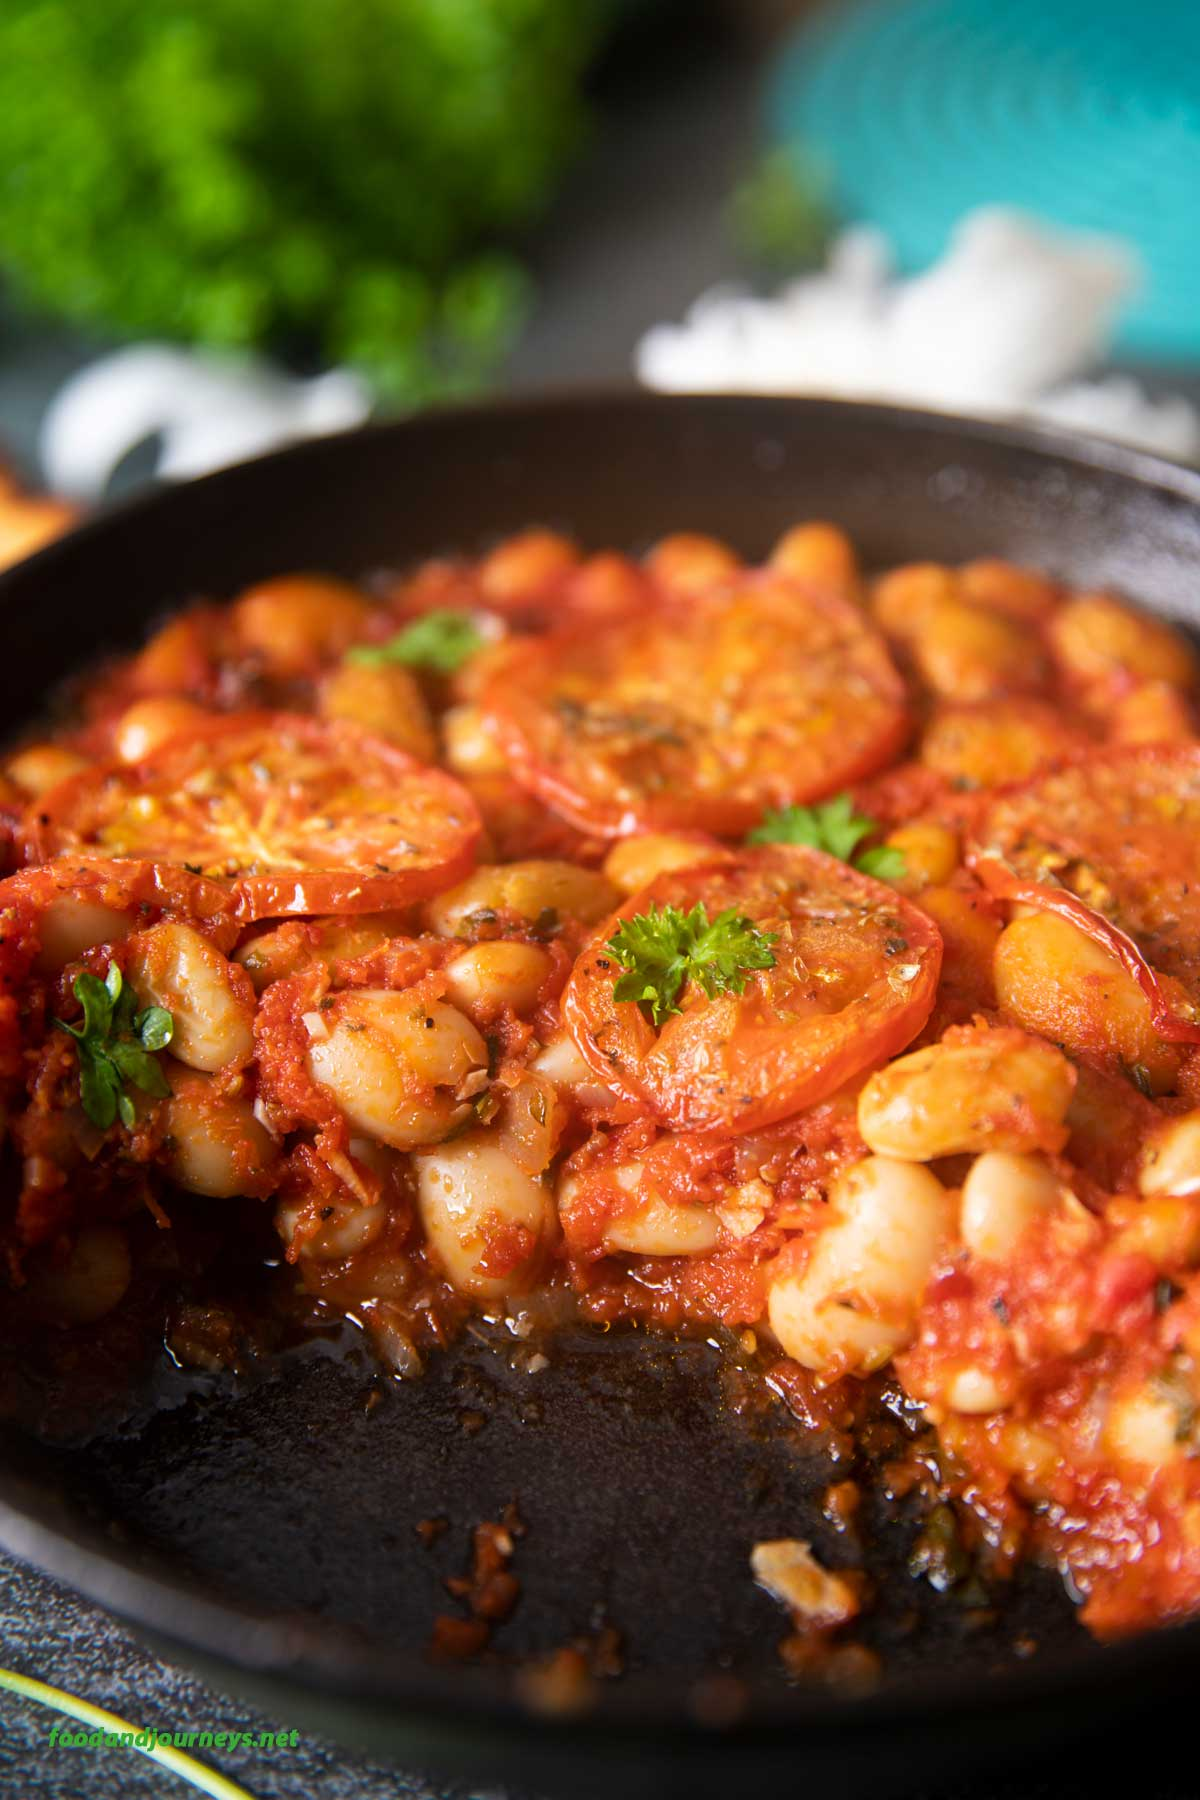 A closer shot of the inside of the beans in tomato sauce, highlighting the flavorful tomato sauce with the butter beans.